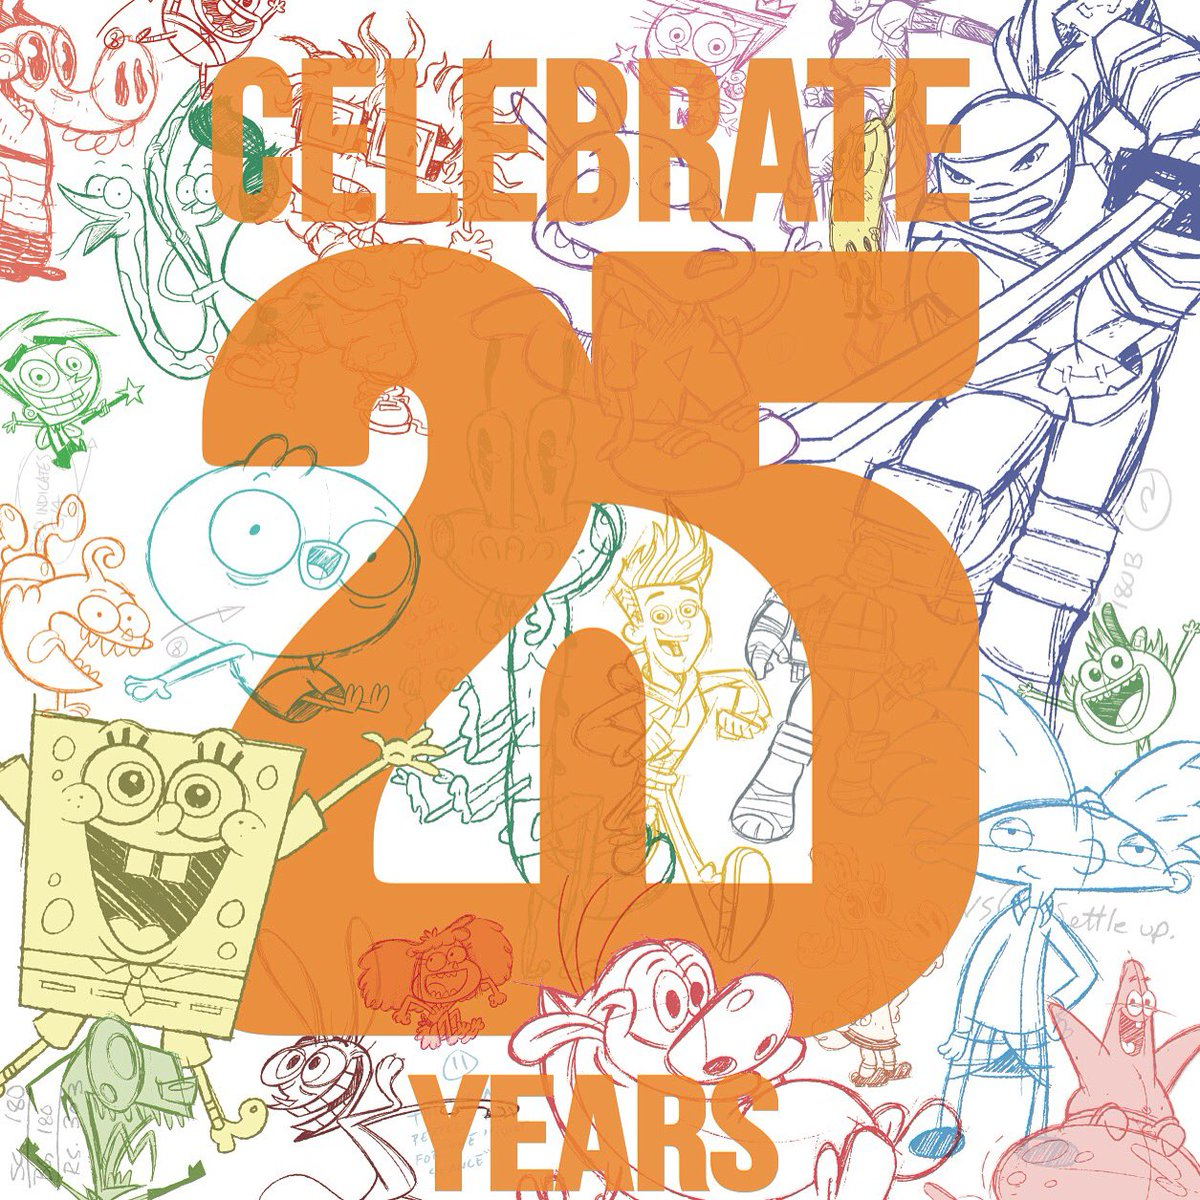 25 years ago, Ren and Stimpy, Doug & Rugrats premiered, changing kids' TV forever. Happy #NickAnimation25 Nicktoons! https://t.co/pzhpWA27JT